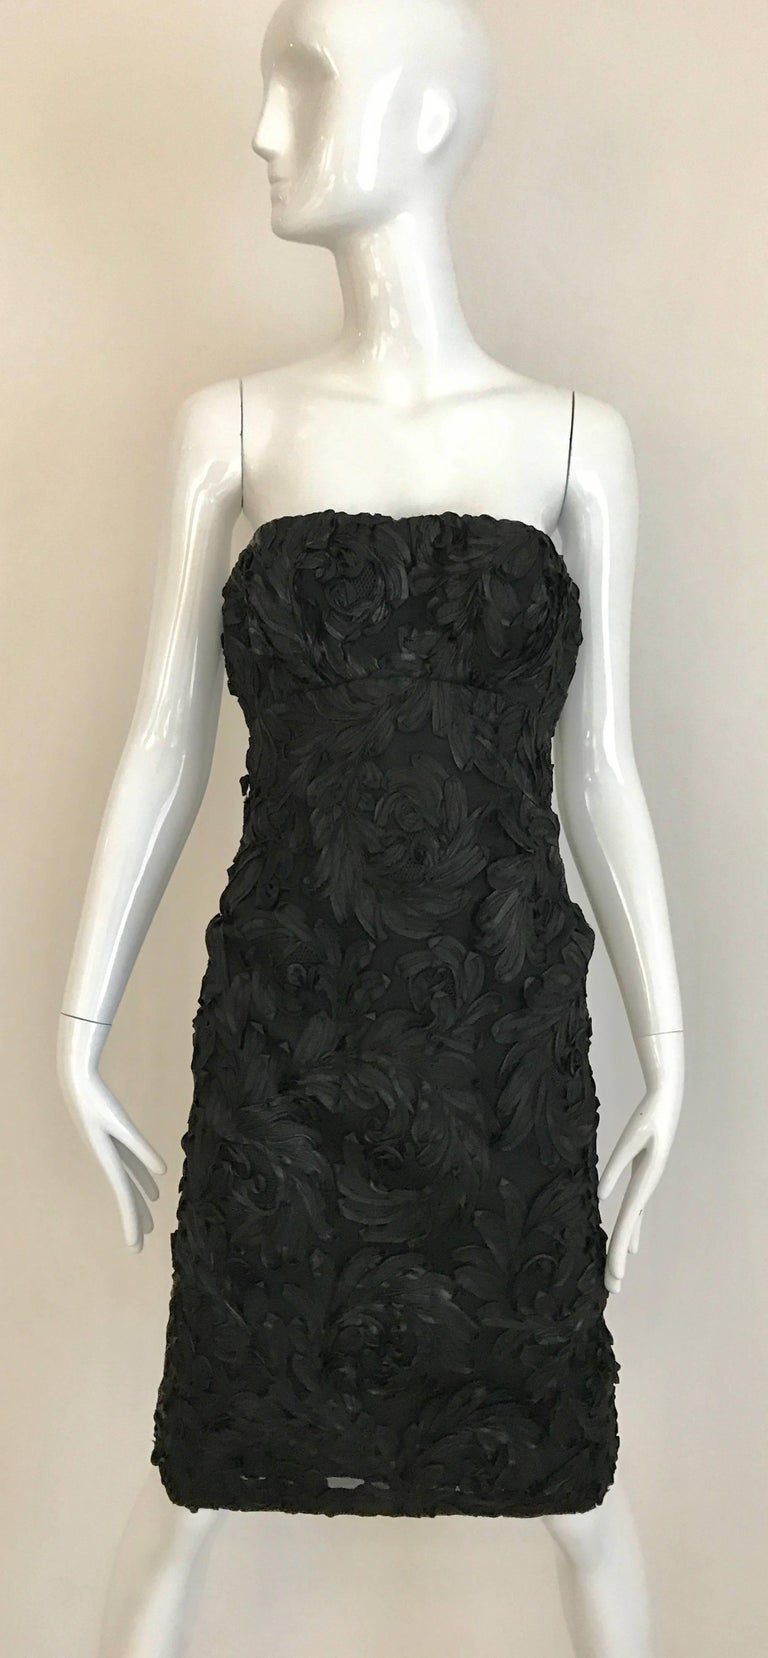 Late 1950s and early 1960s Black Strapless silk lace soutache strapless cocktail dress with Cropped Jacket lined in Mink.  Jacket measurement:  Bust : 36 inch  Dress measurement: Bust: 36 inch / Waist: 25 inch /  Hip 34 inch / Dress Length: 33 inch